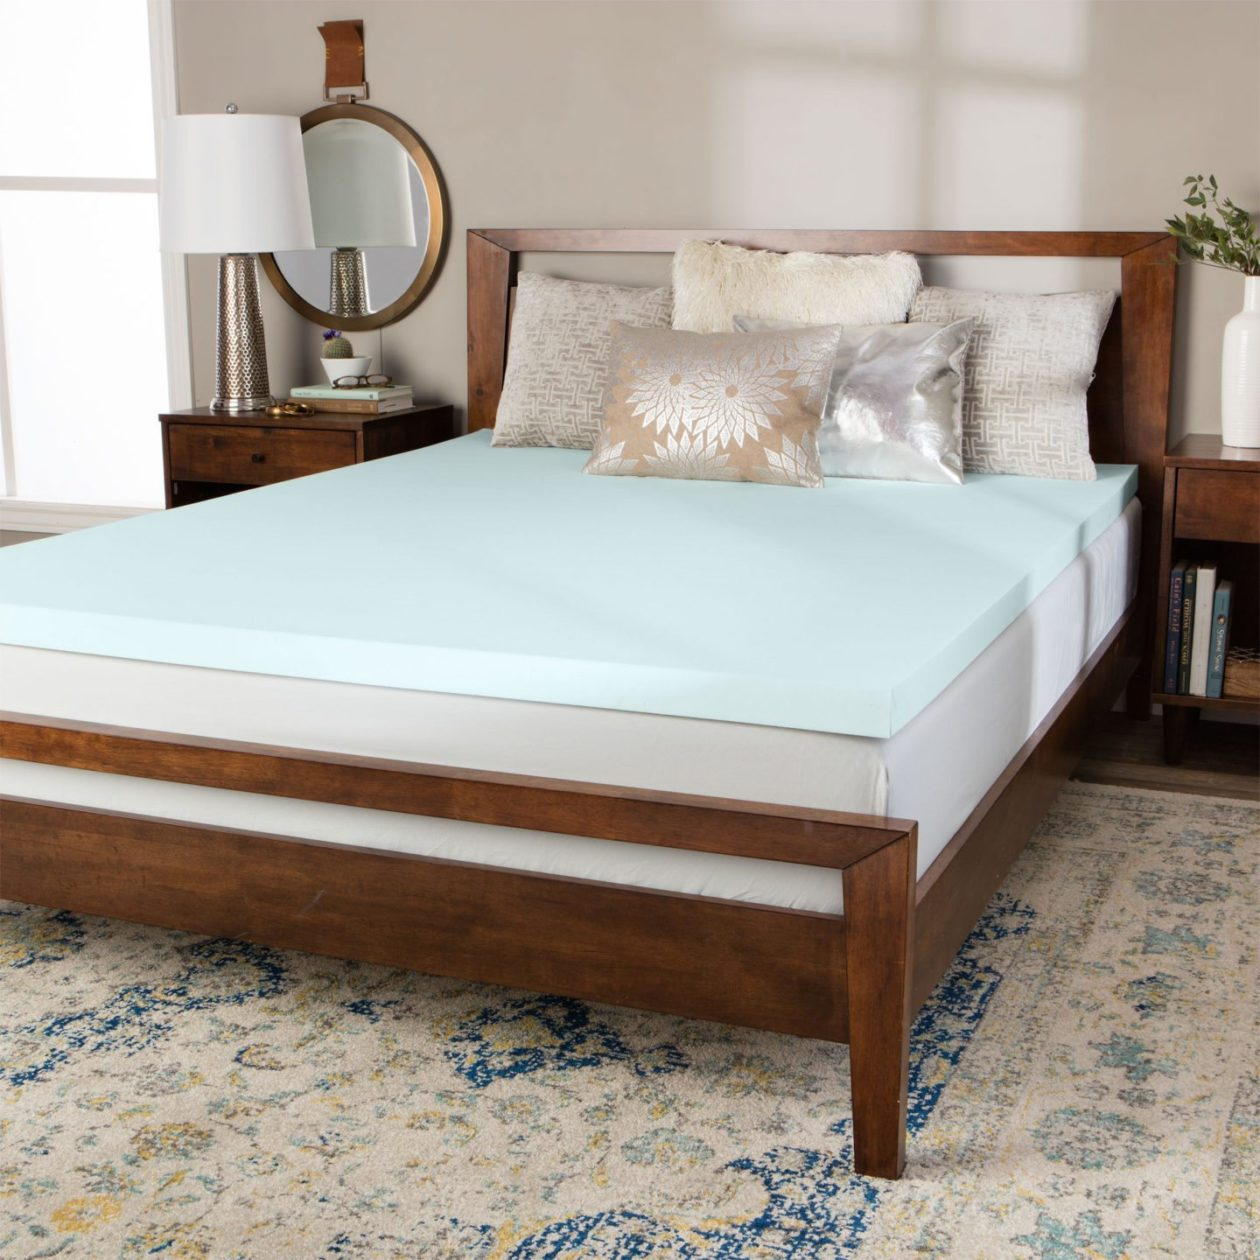 Hard Mattress Topper How To Compare Memory Foam Mattress Toppers Overstock